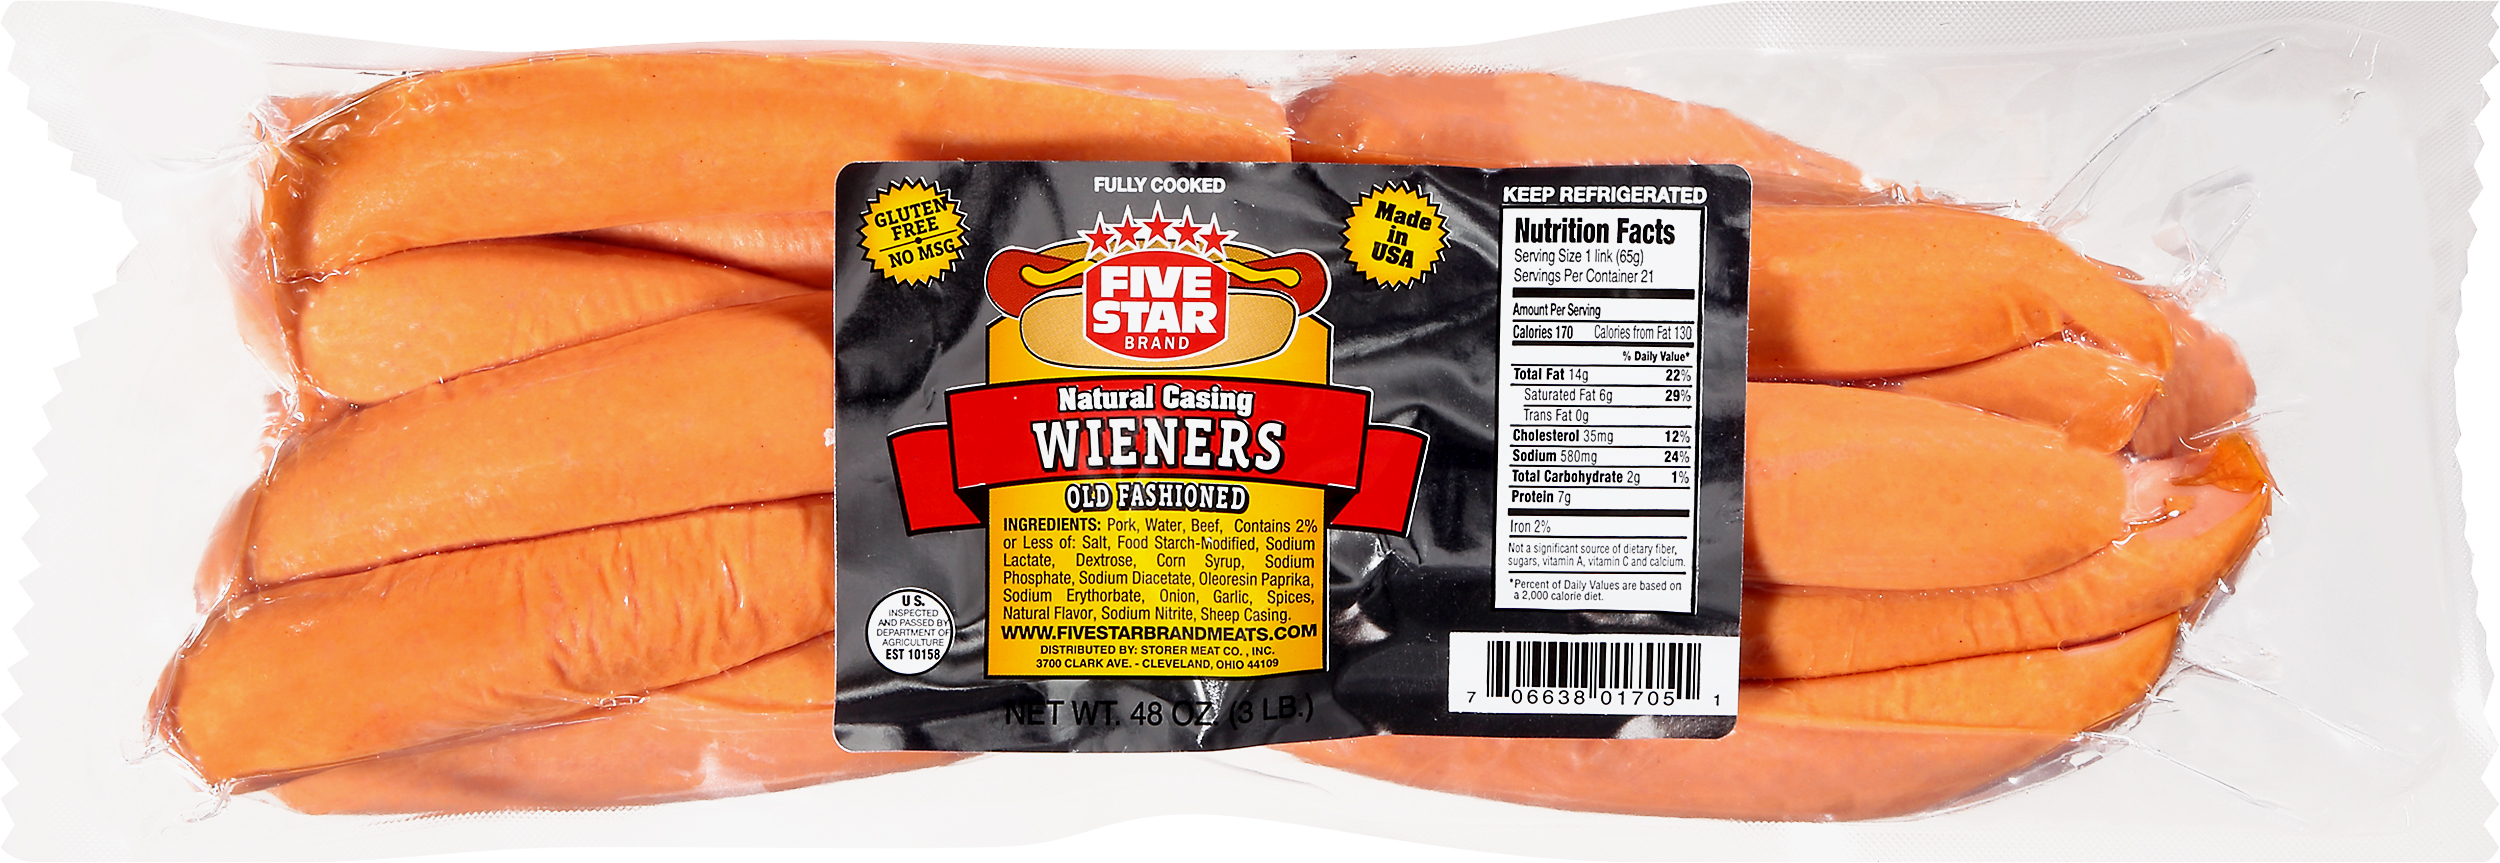 FIVE STAR Brand Natural Casing WIENER 3LB